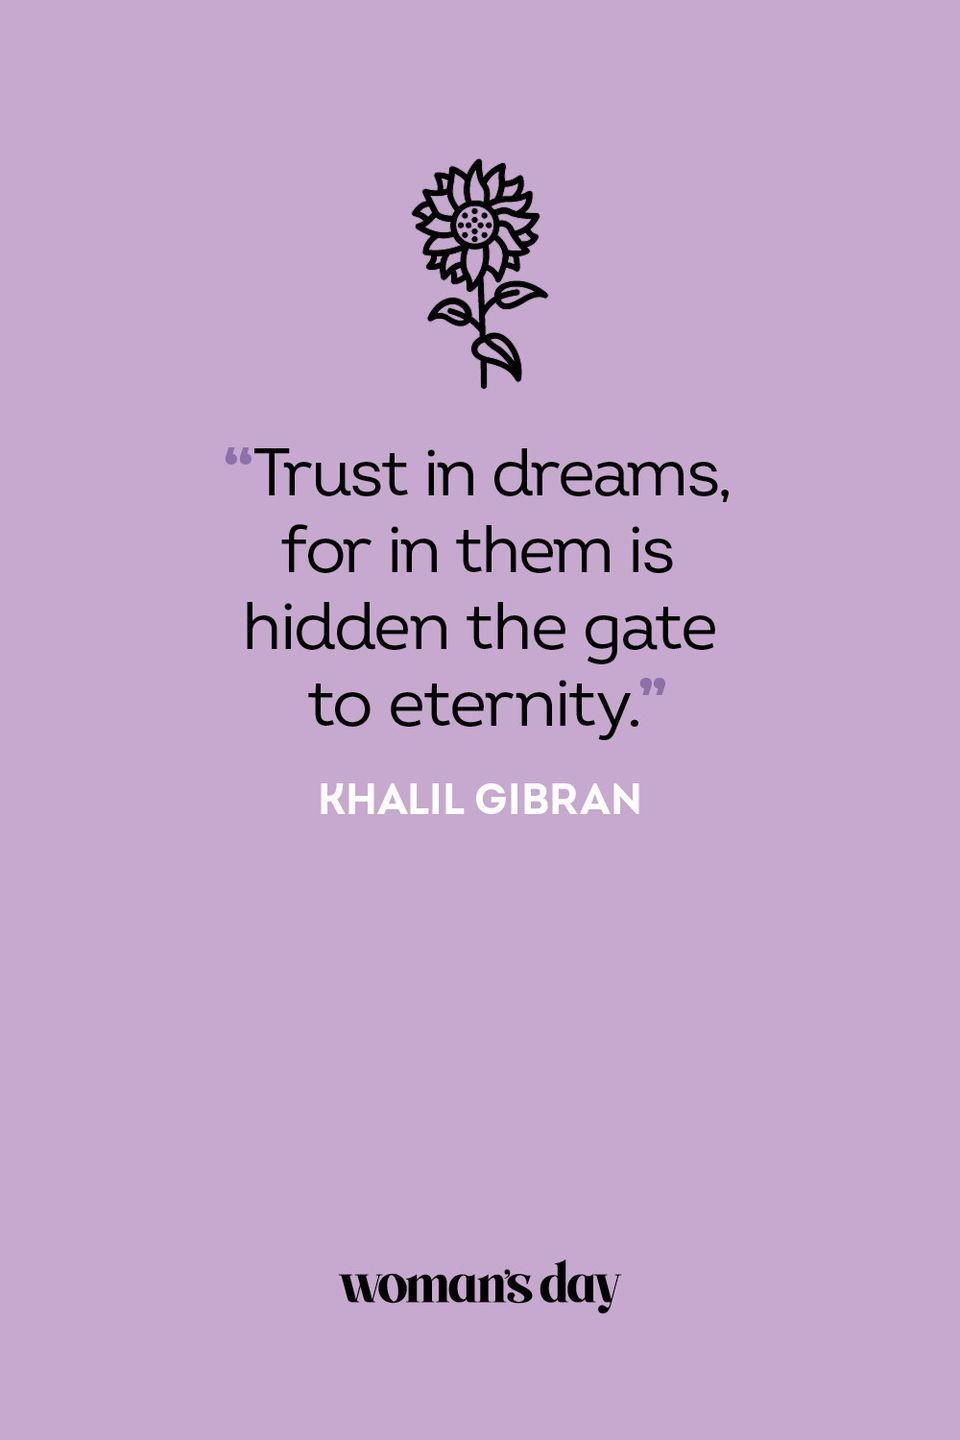 <p>Trust in dreams, for in them is hidden the gate to eternity.</p>